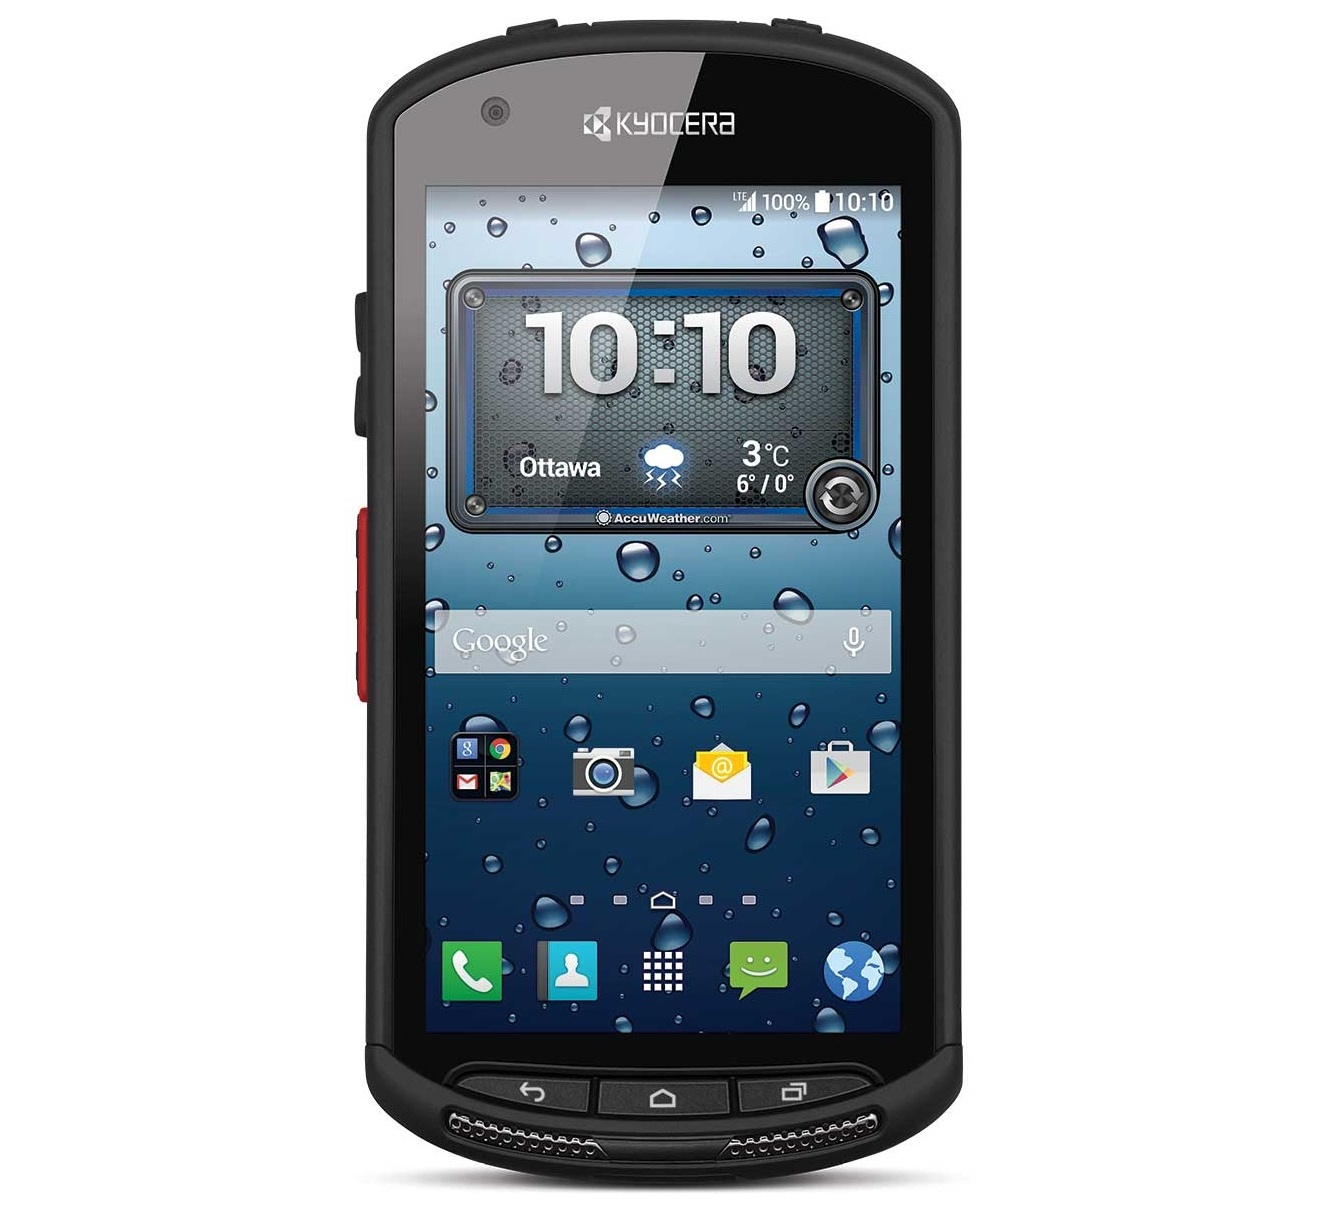 Kyocera Duraforce